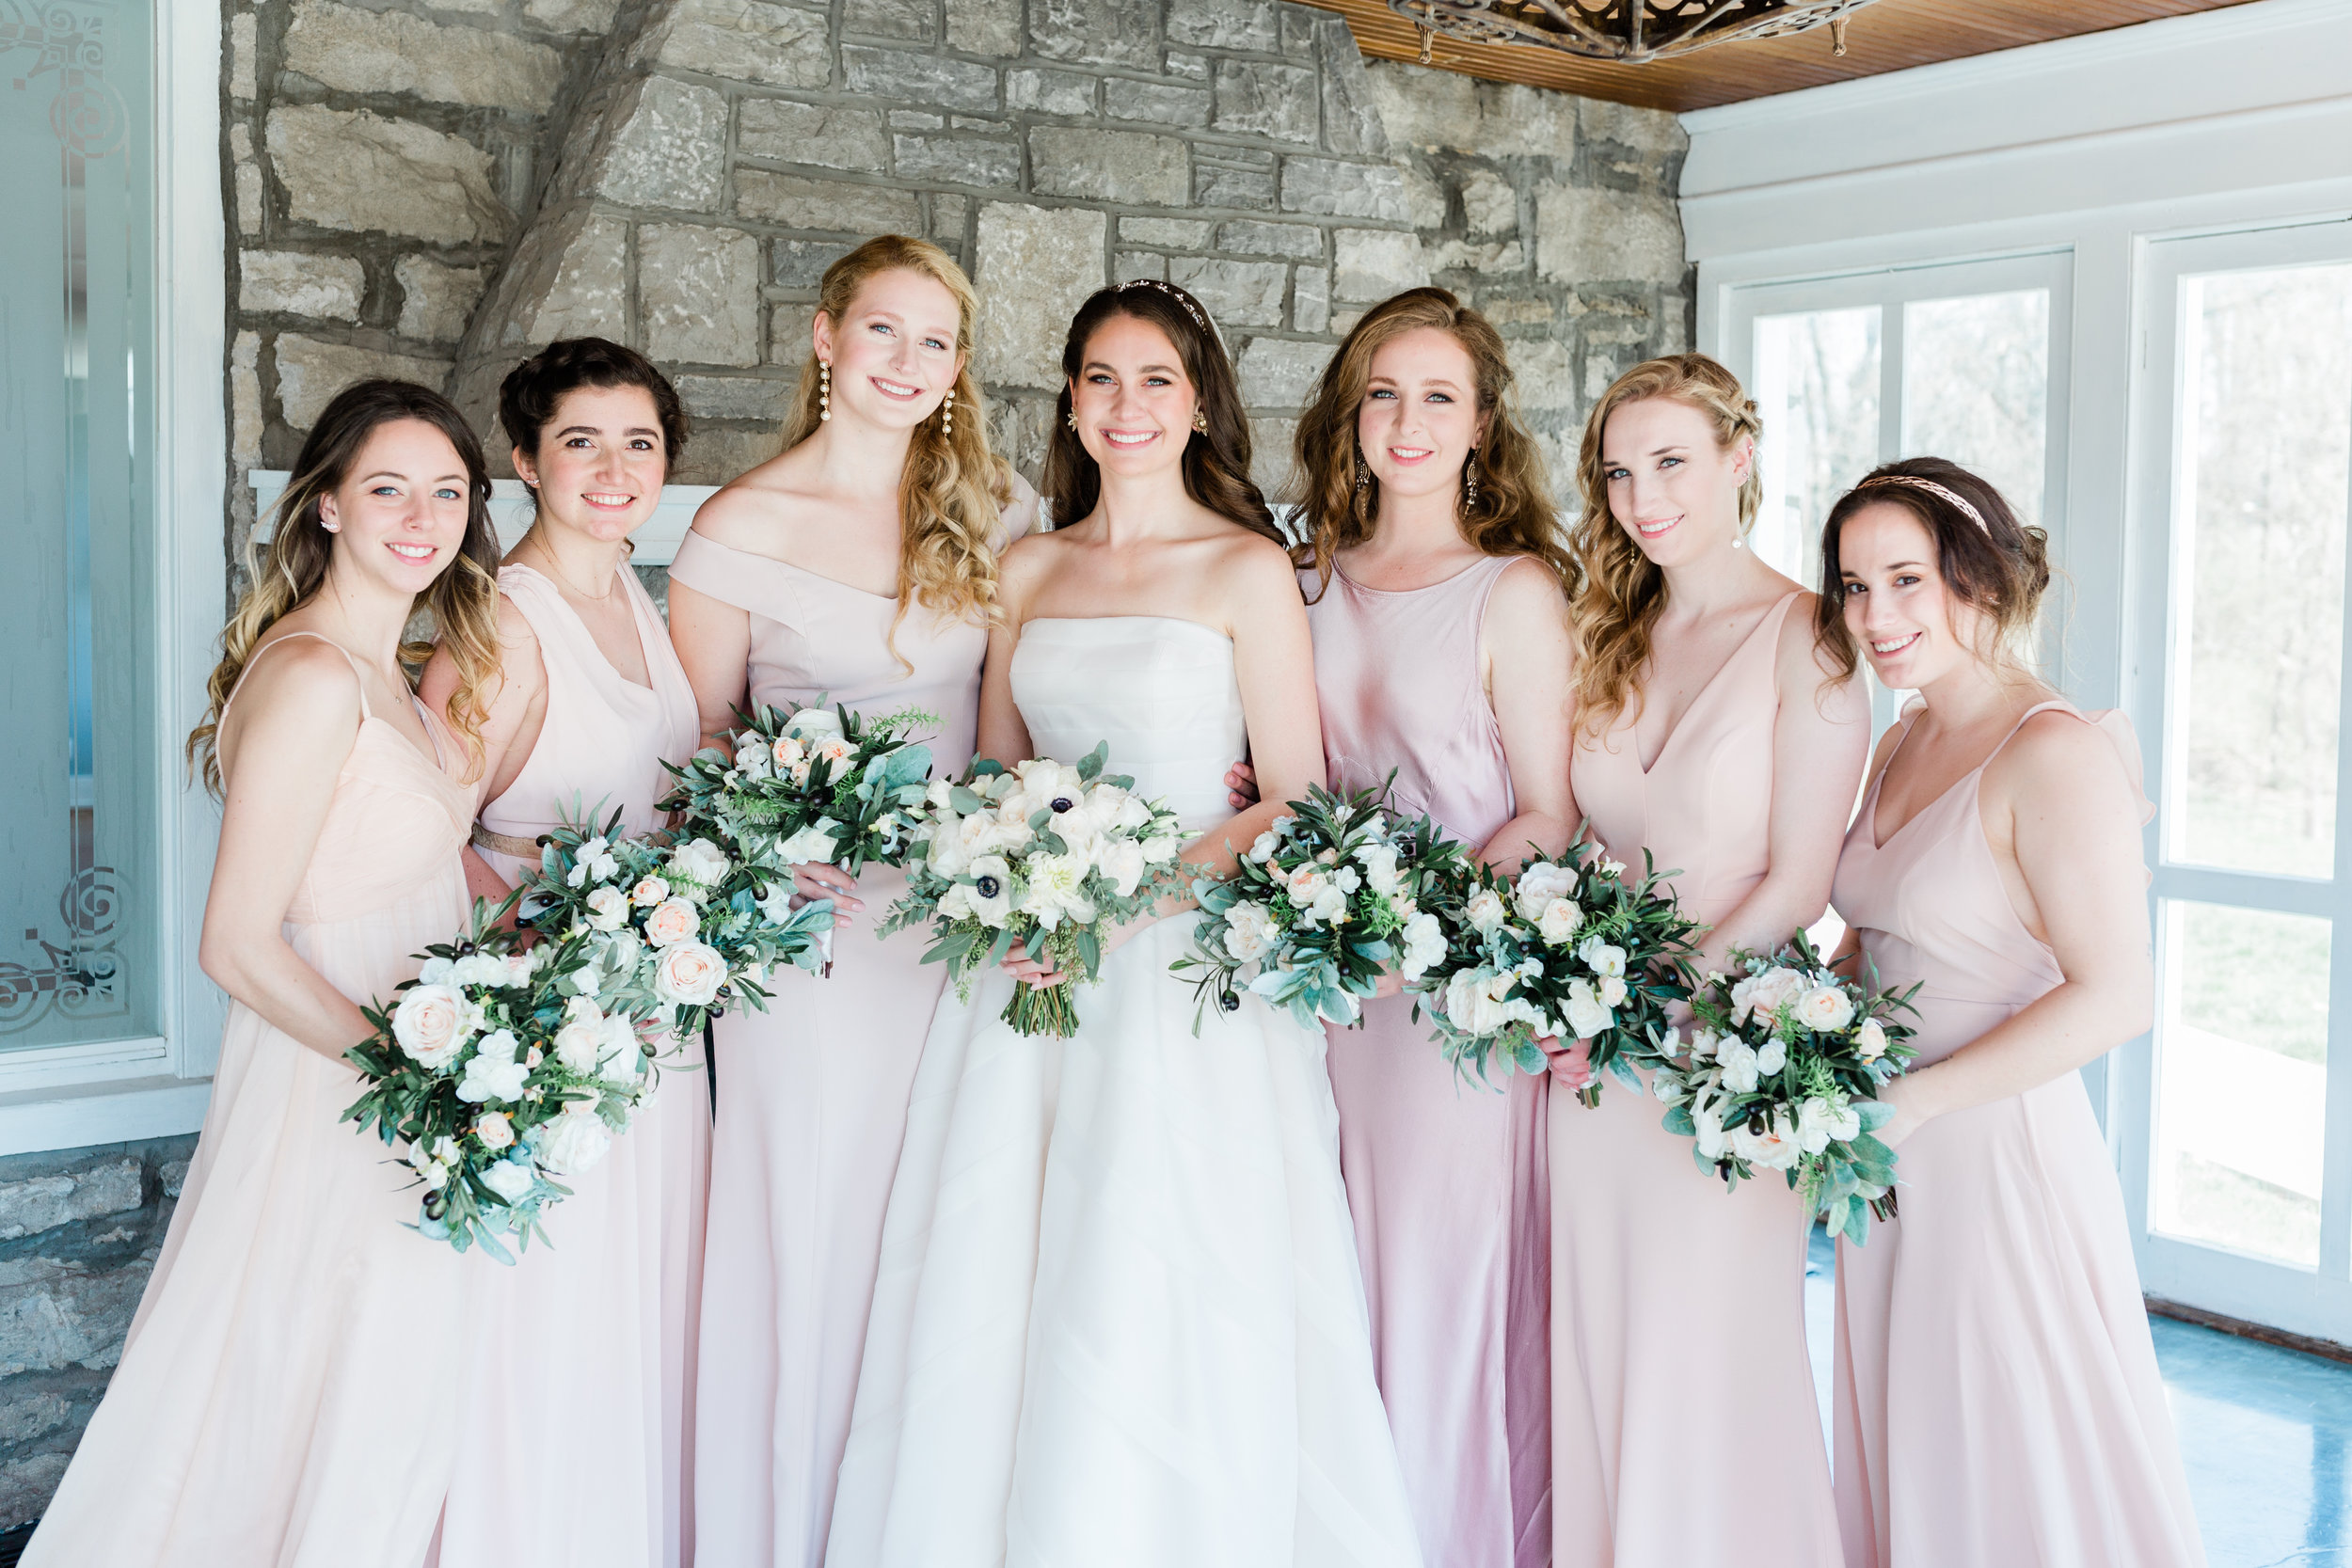 Dorothy_Louise_Photography_Amanda_Ryan_Stone_House_St_Charles_Wedding_Highlights-118.jpg